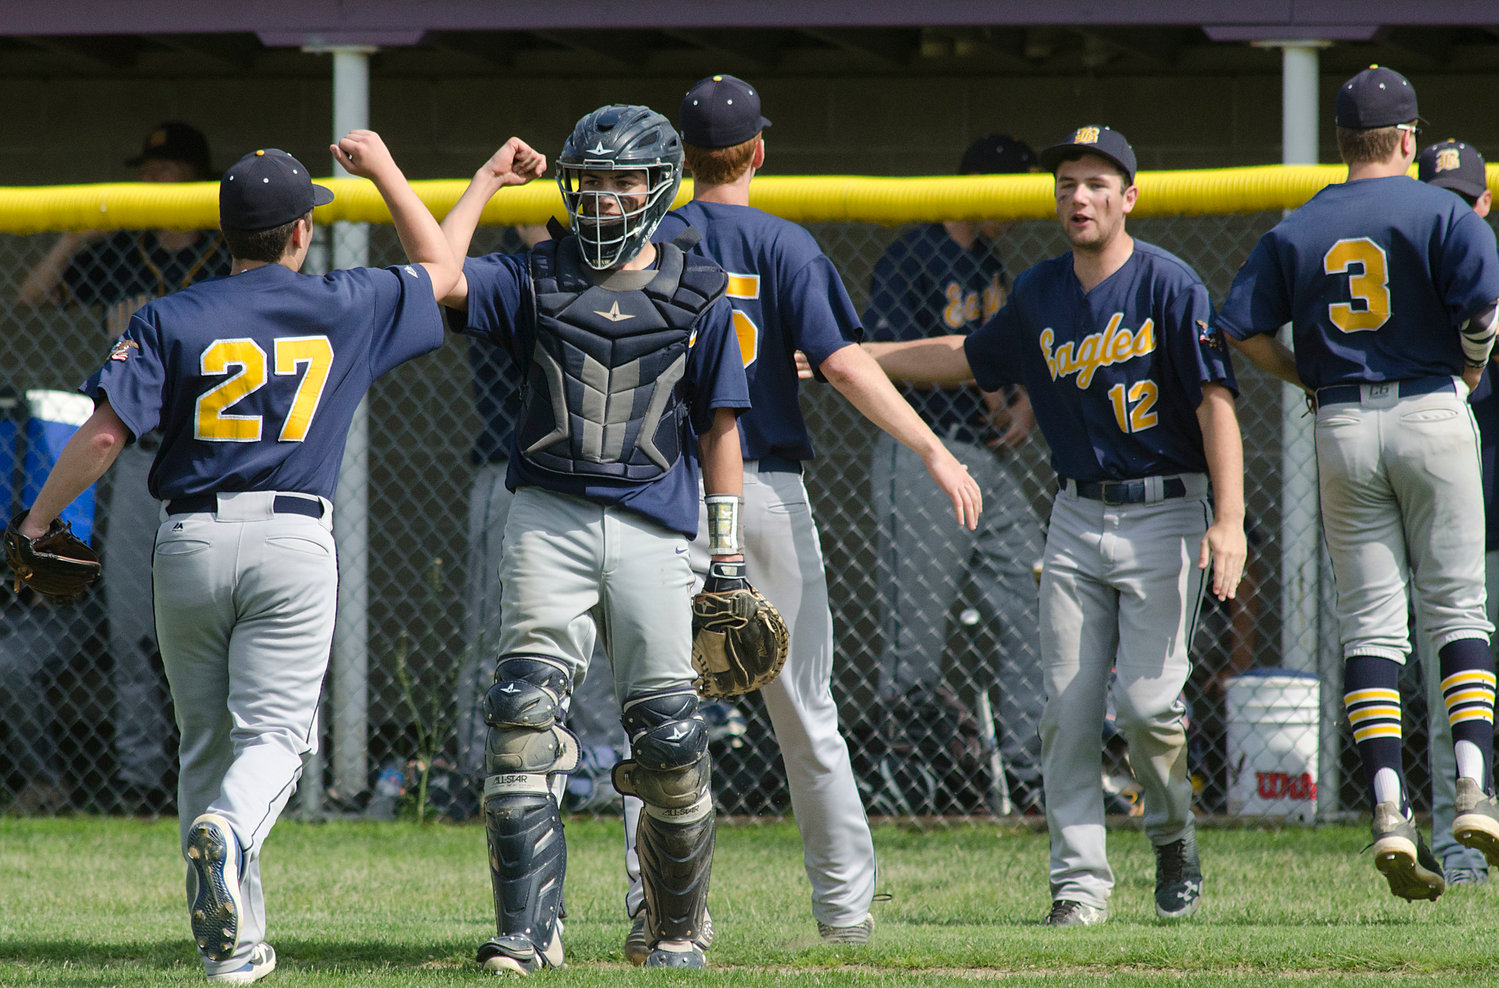 Elijah Kraemer (left) Jack Kriz, Henry Johnson and others celebrate with teammates after getting out of a rough inning.